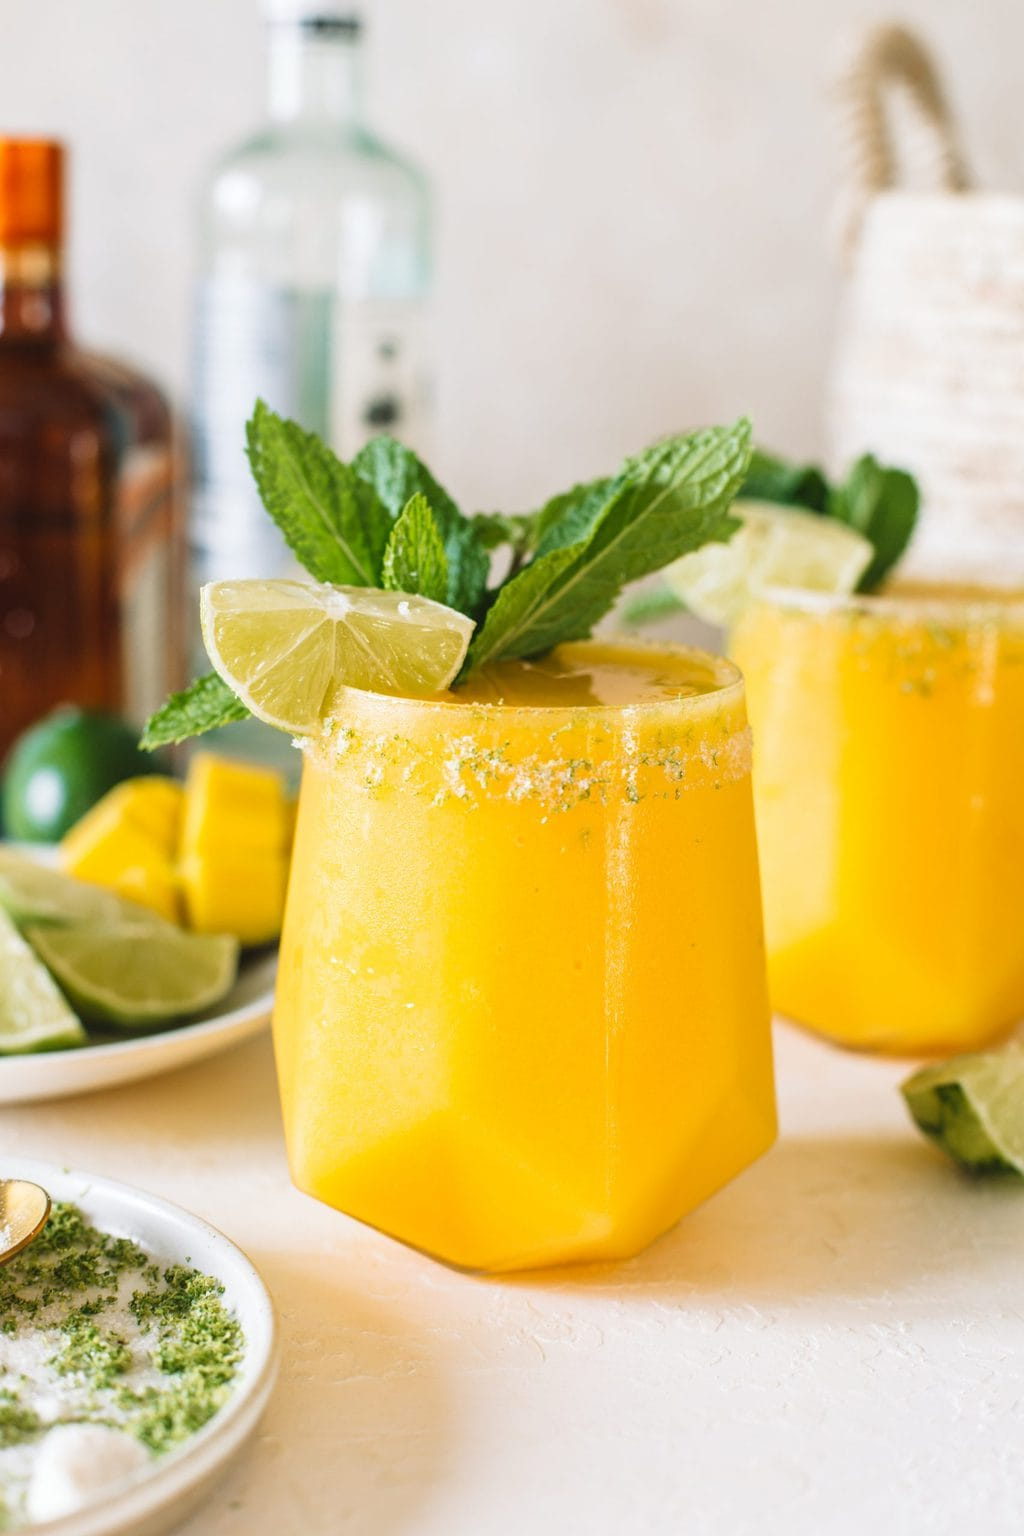 A short glass filled with mango daiquiri and topped with a fresh lime wedge and mint sprig.